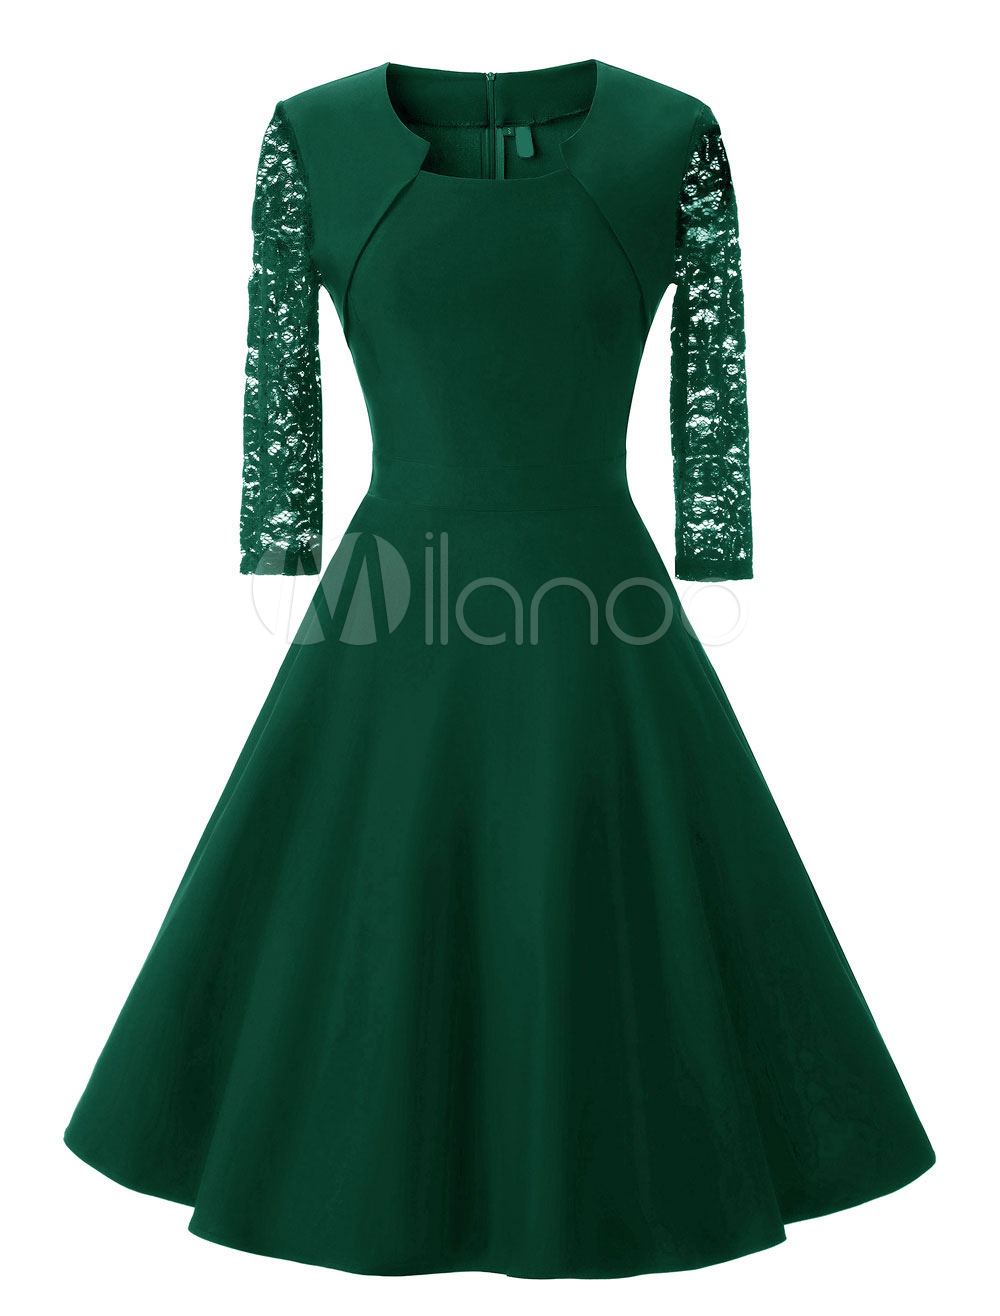 Green Vintage Dress Lace Semi Sheer 3/4 Length Sleeve Pleated Dresses For Women